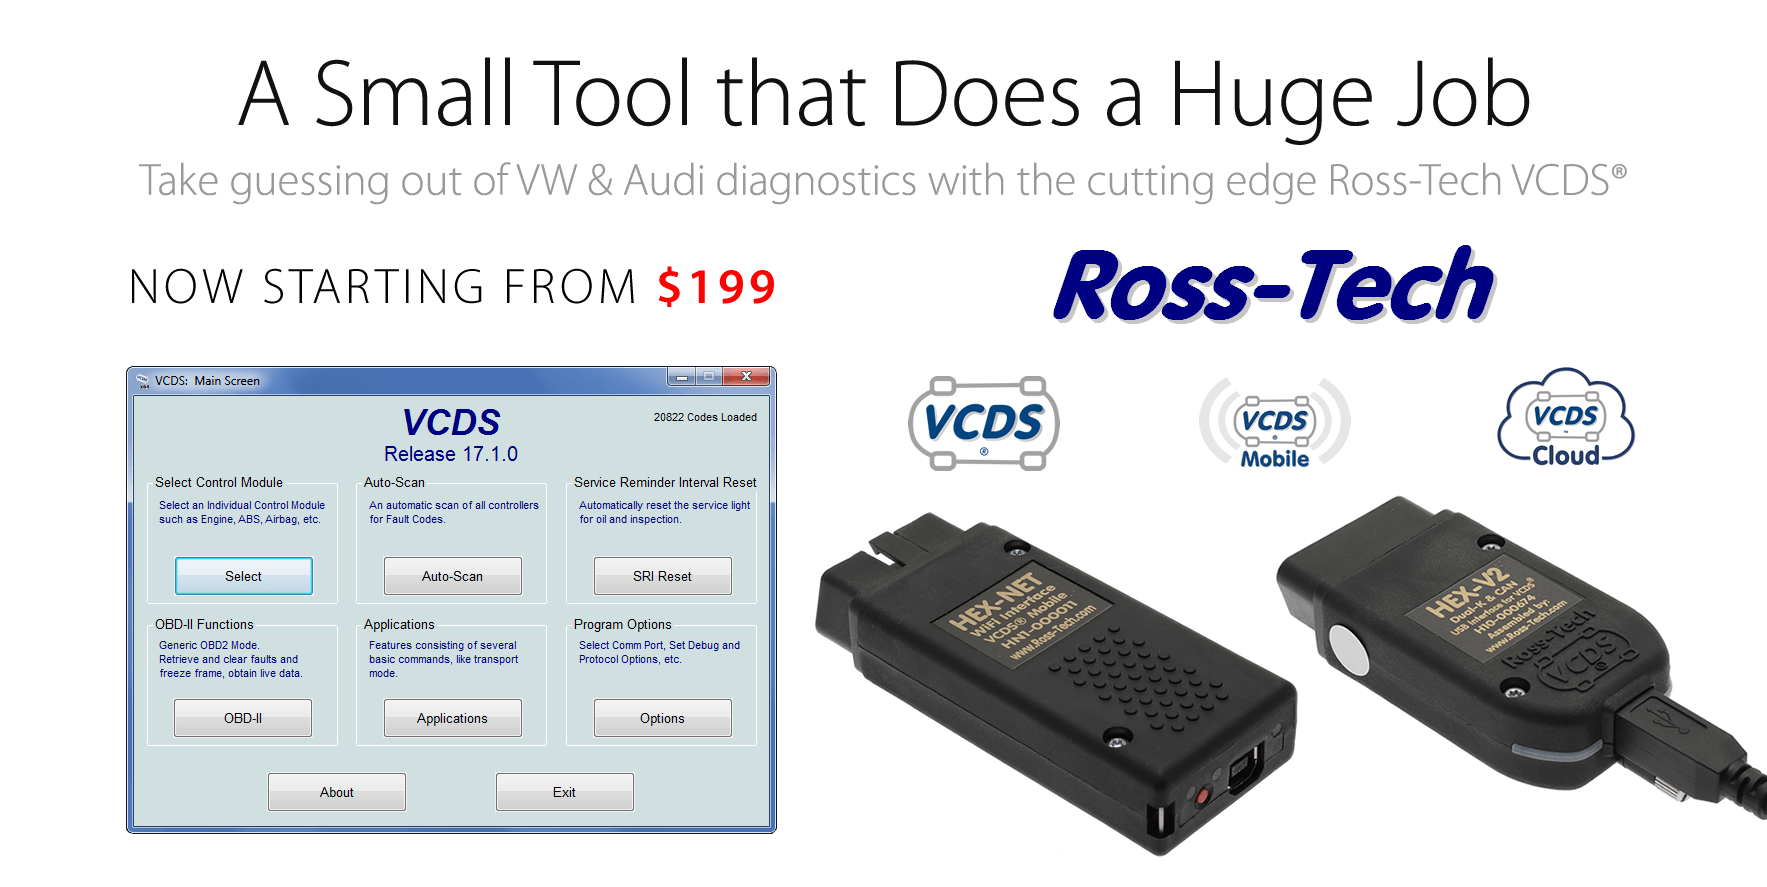 Ross-Tech VCDS (VAG-COM Diagnostic System) for Audi, Volkswagen